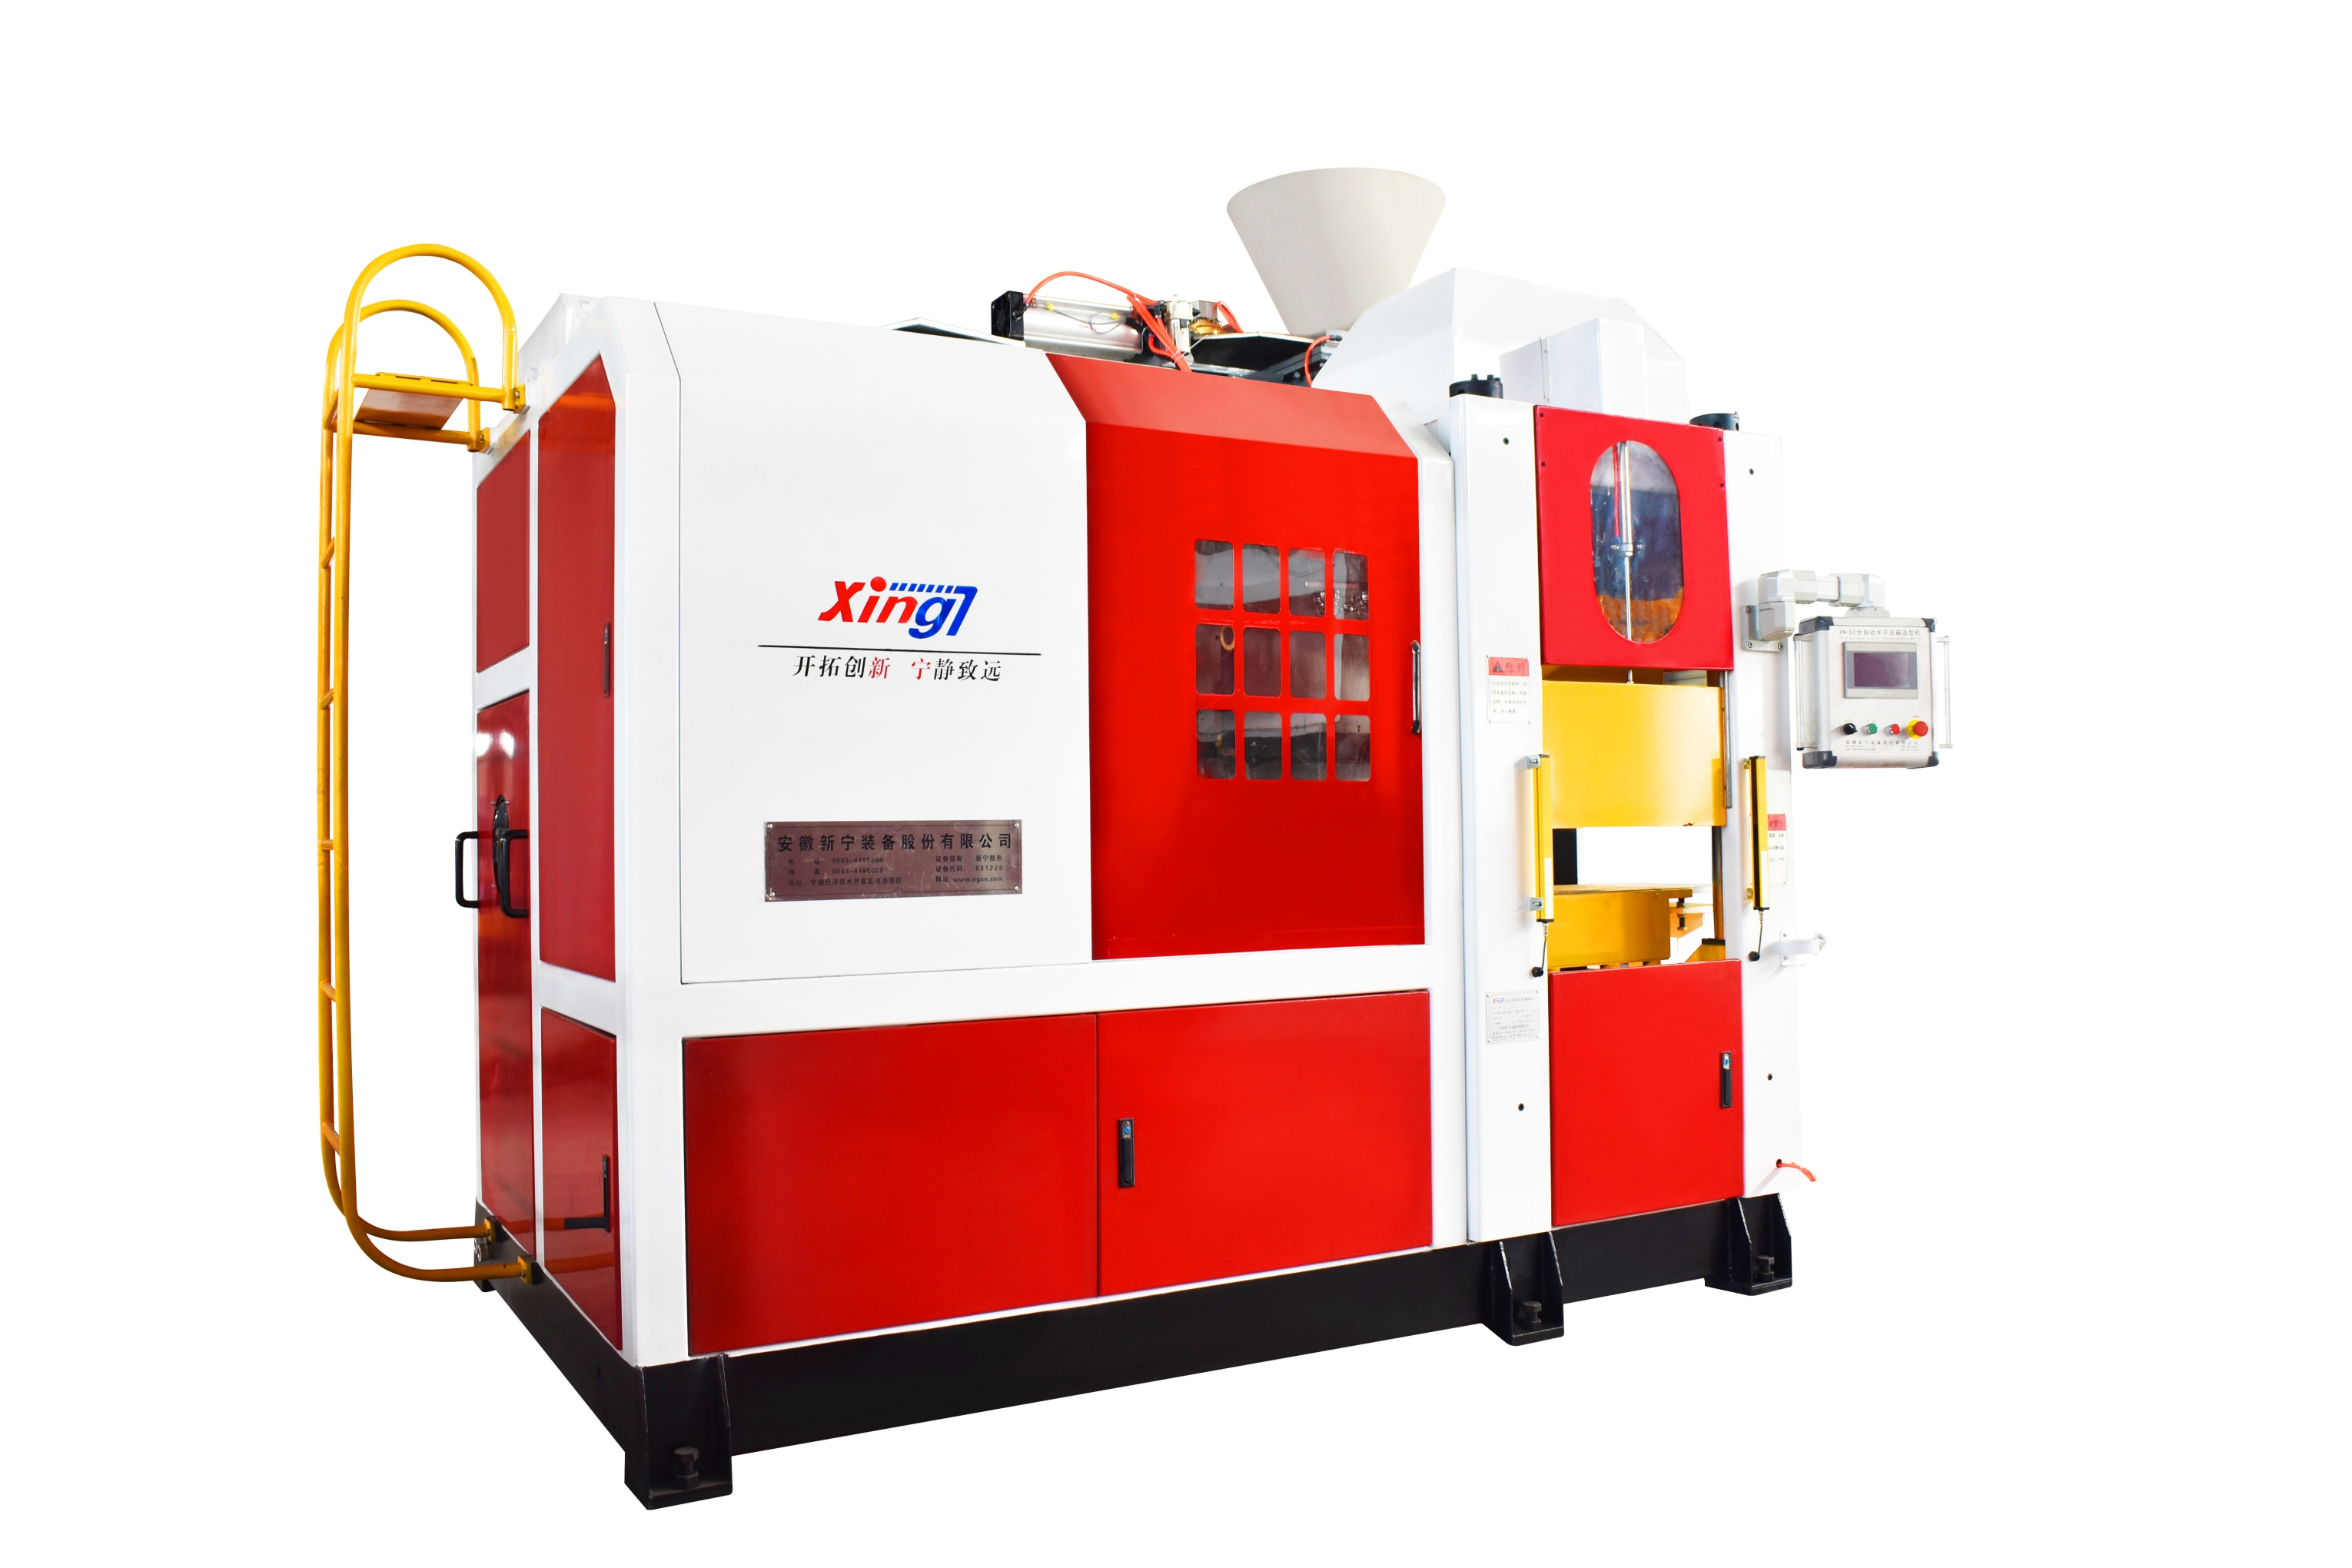 Automatic resin sand or clay sand flask less casting molding foundry plant machine used casting molding line